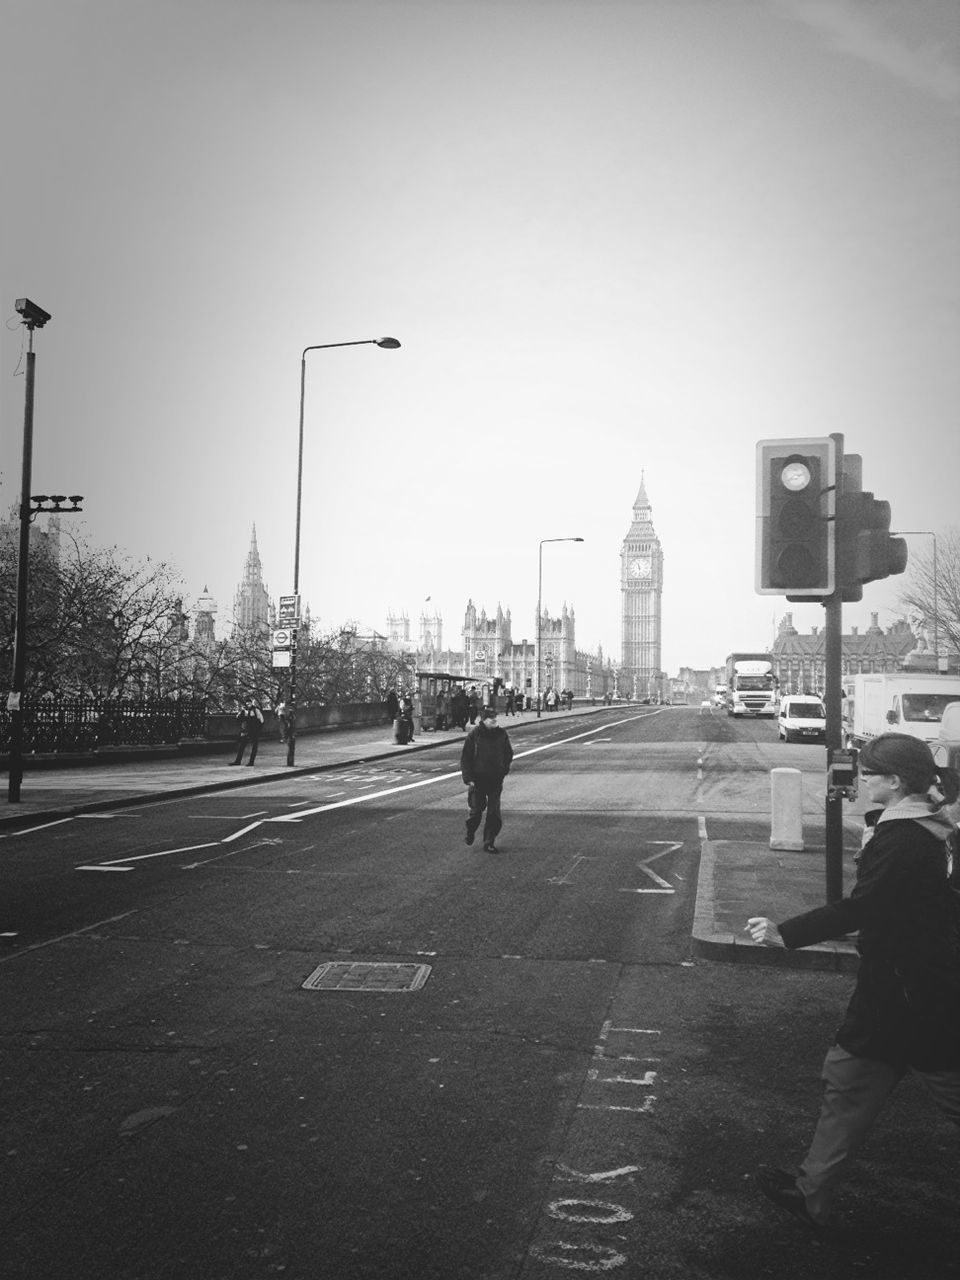 City Street With Big Ben In Background